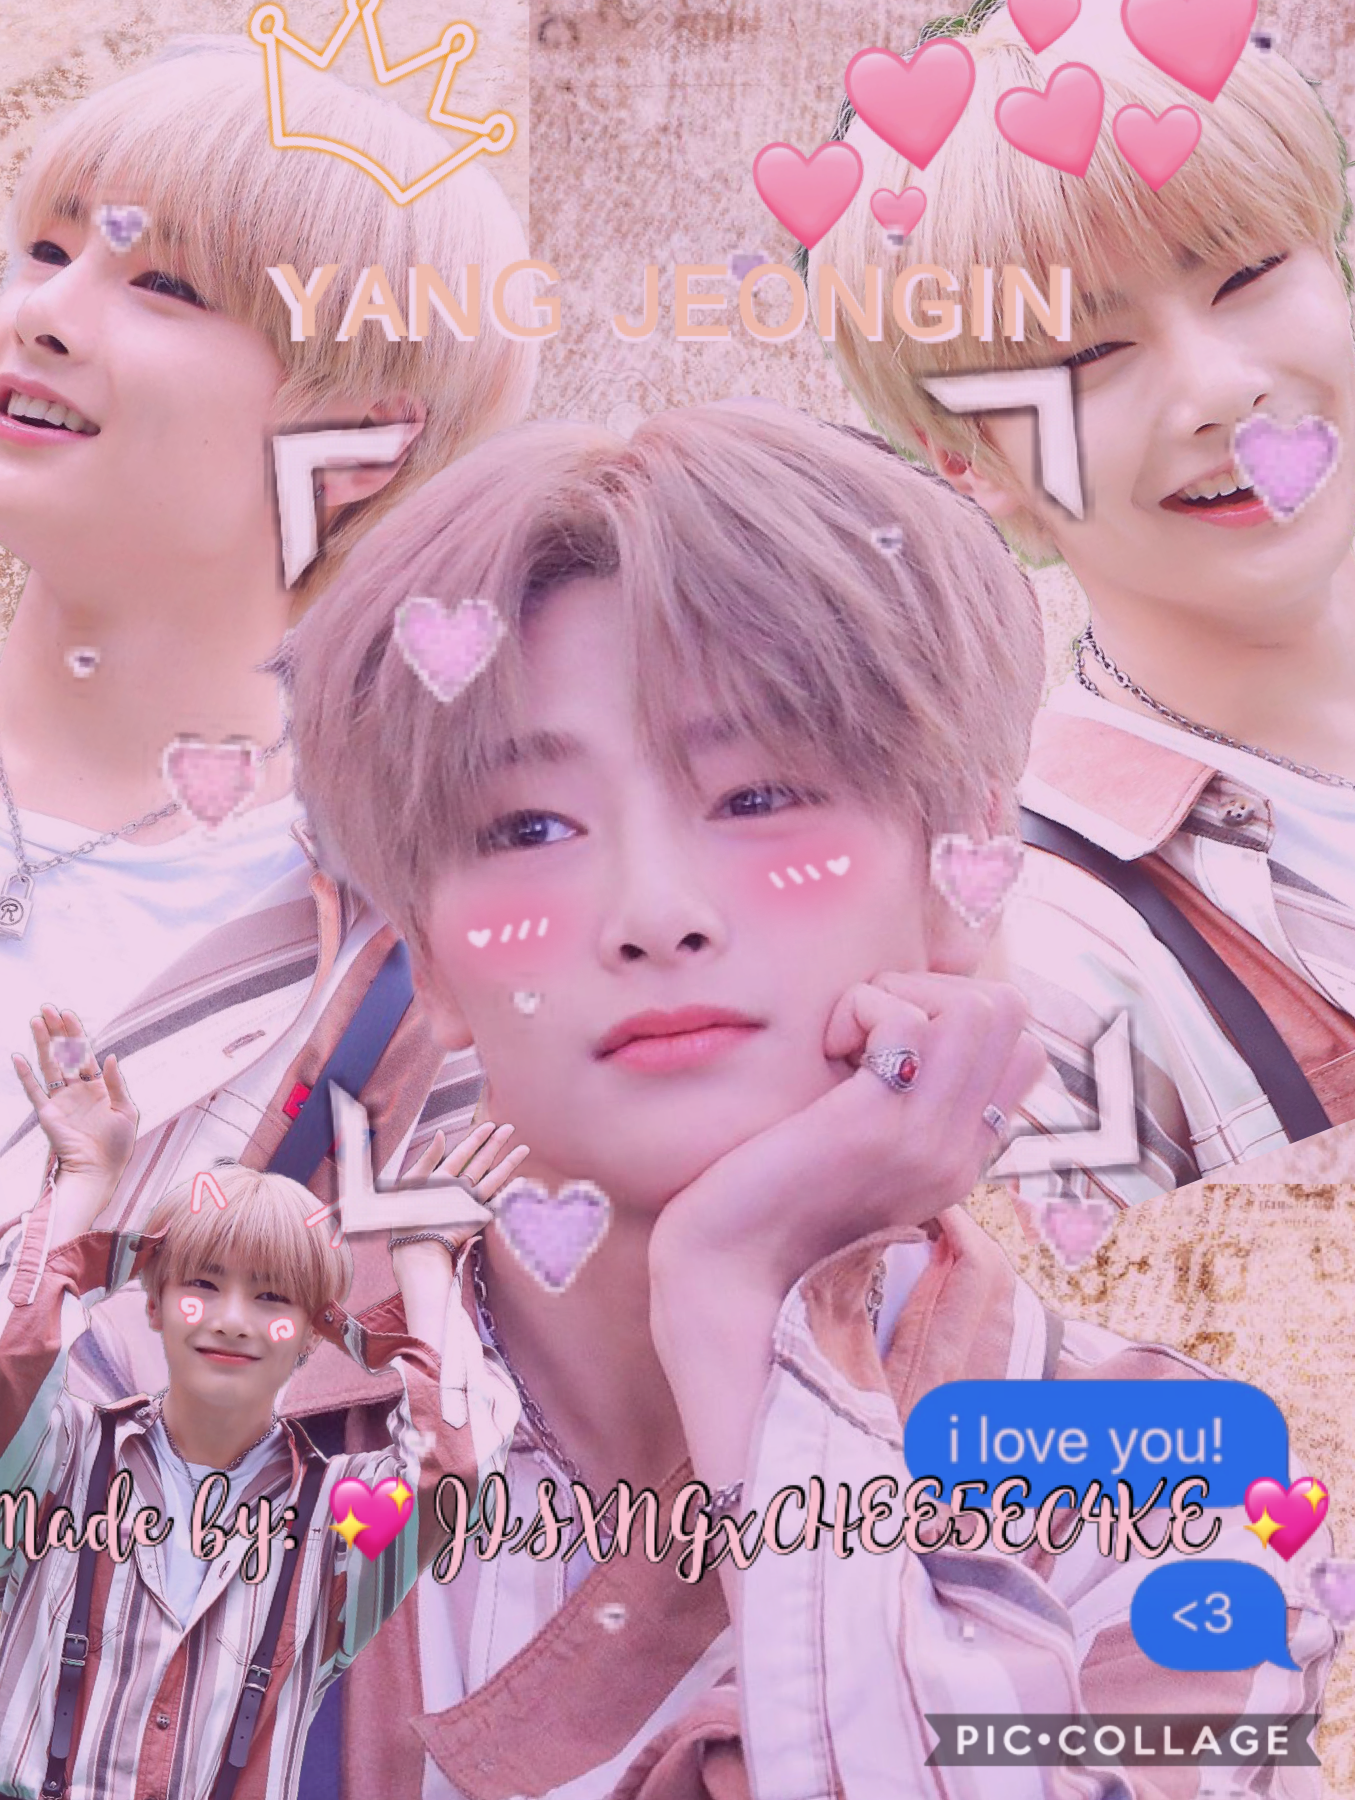 Onion!!! It's JISXUNGxCHEE5EC4KE! I just joined the acc :) I'll try to post on here! On my personal acc I have a BTS ff and maybe in the future I'll do a Stray Kids one :))) okie baiiii